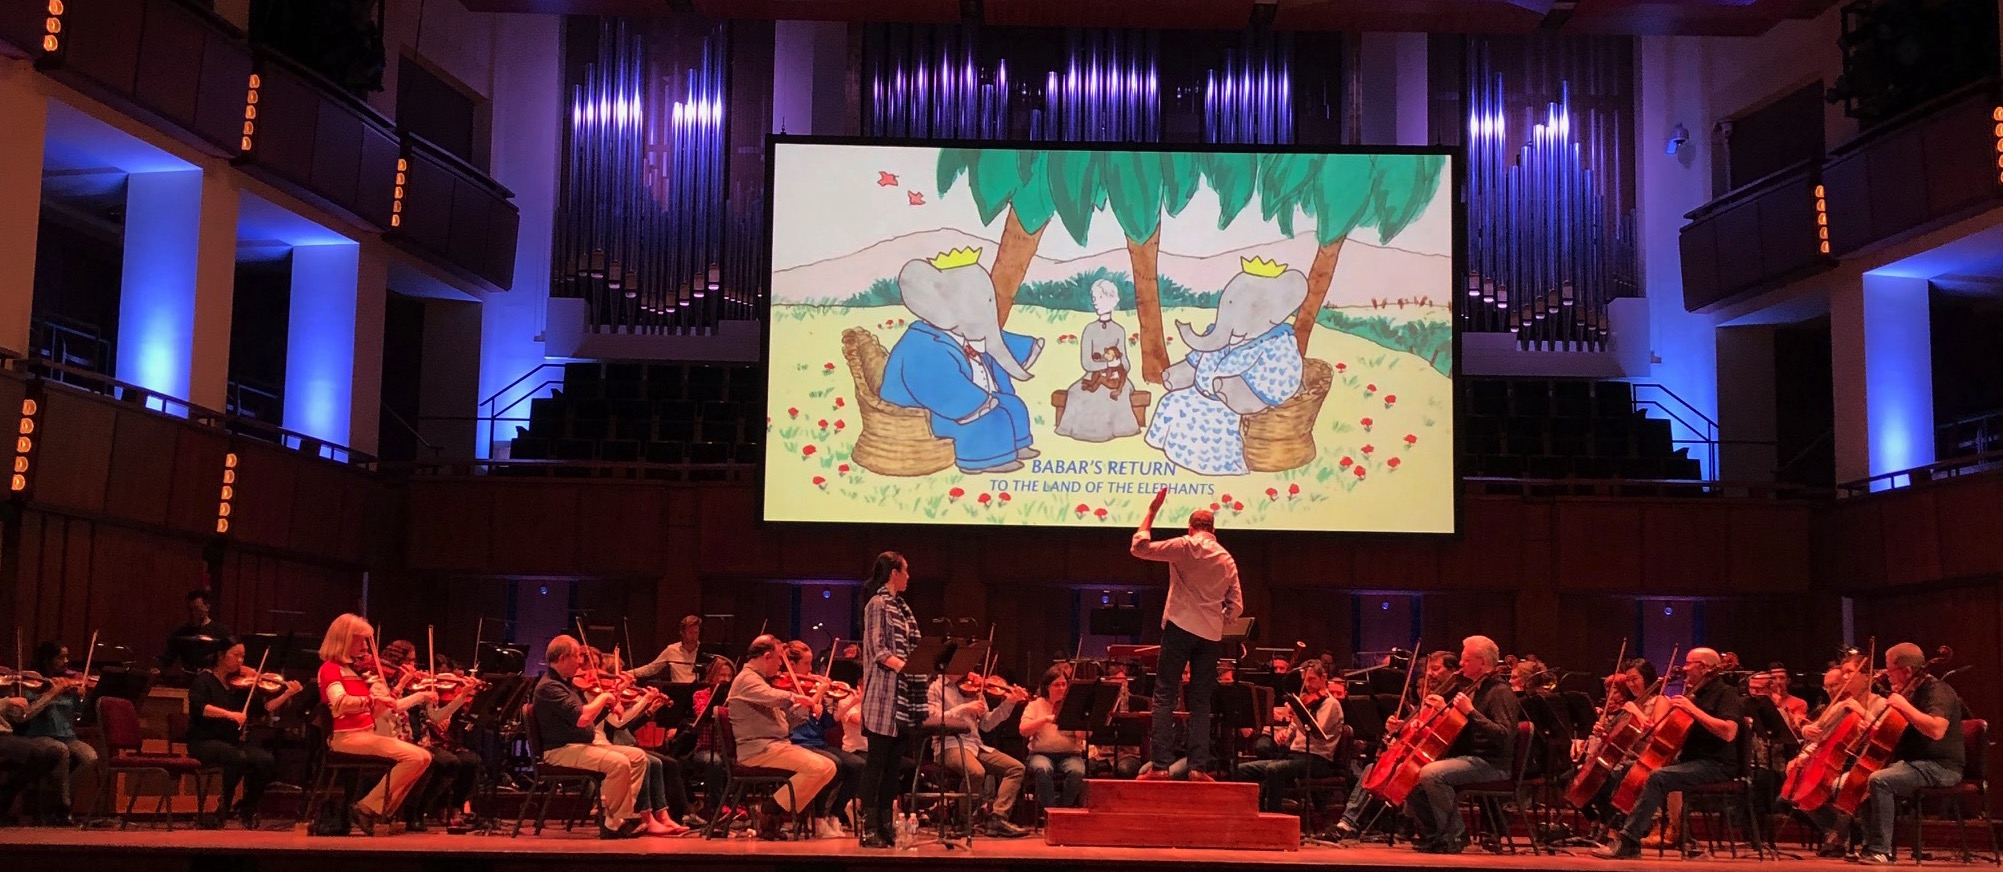 Rehearsal for the first U.S. performance of  Babar's Return to the Land of the Elephants  by the National Symphony Orchestra, Kennedy Center, Washington, DC, April 3, 2019  Steven Reineke conductor, Regina Aquino narrator. Jean de Brunhoff watercolor from the Kendra and Allan Daniel Collection, used with permission  Photo: Raphael Mostel